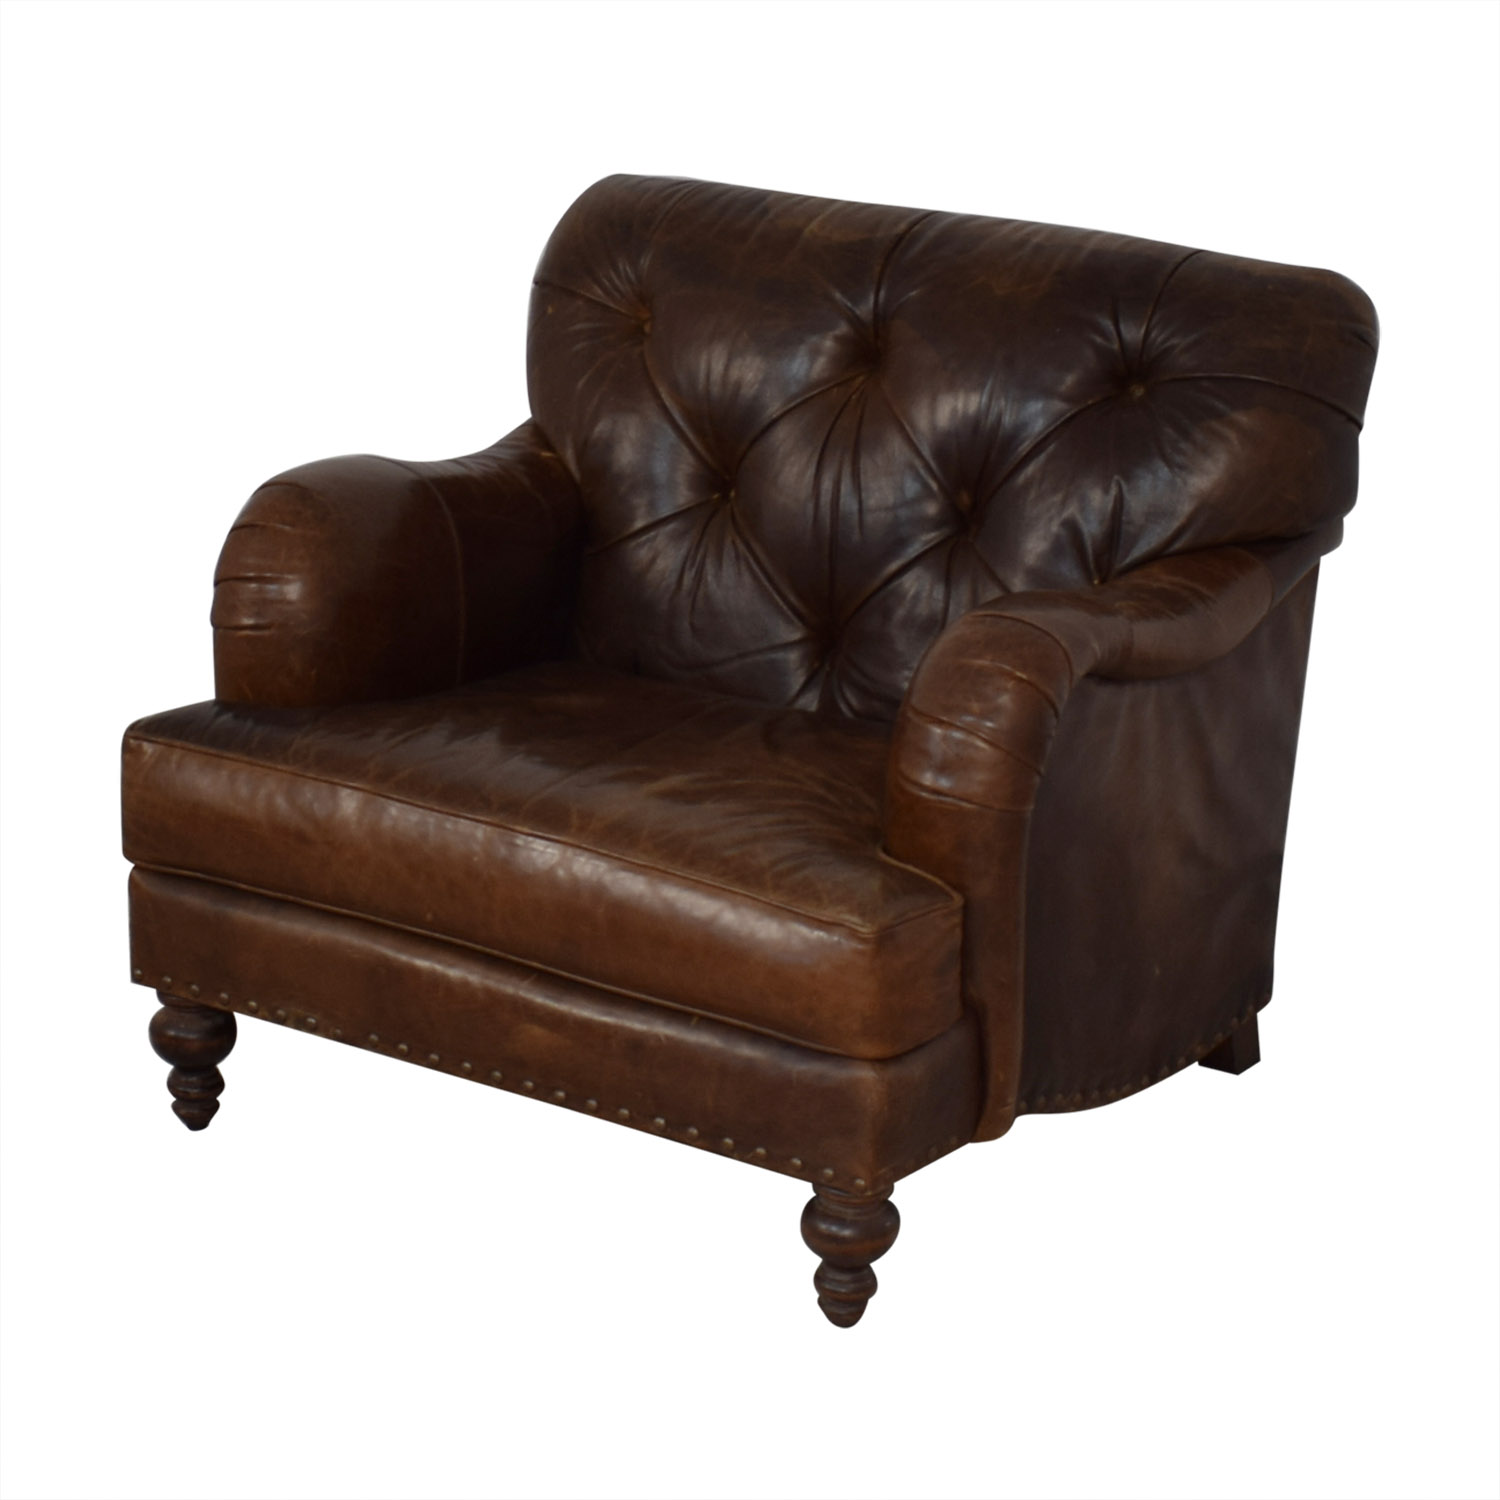 COCOCO COCOCO Chesterfield Accent Chair used